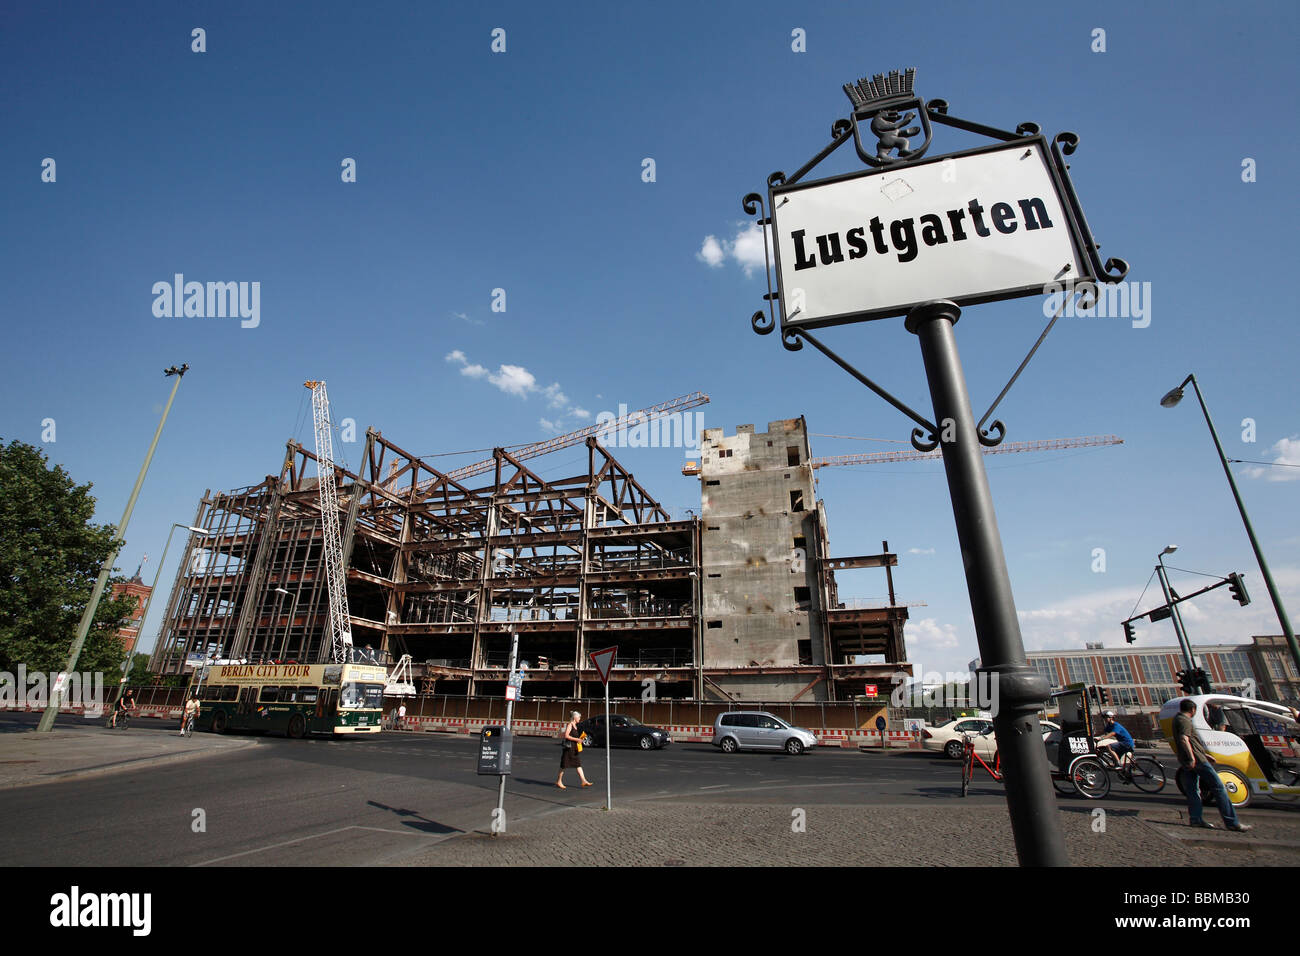 Lustgarten, sign in front of the Palace of the Republic during deconstruction, Berlin, Germany, Europe - Stock Image